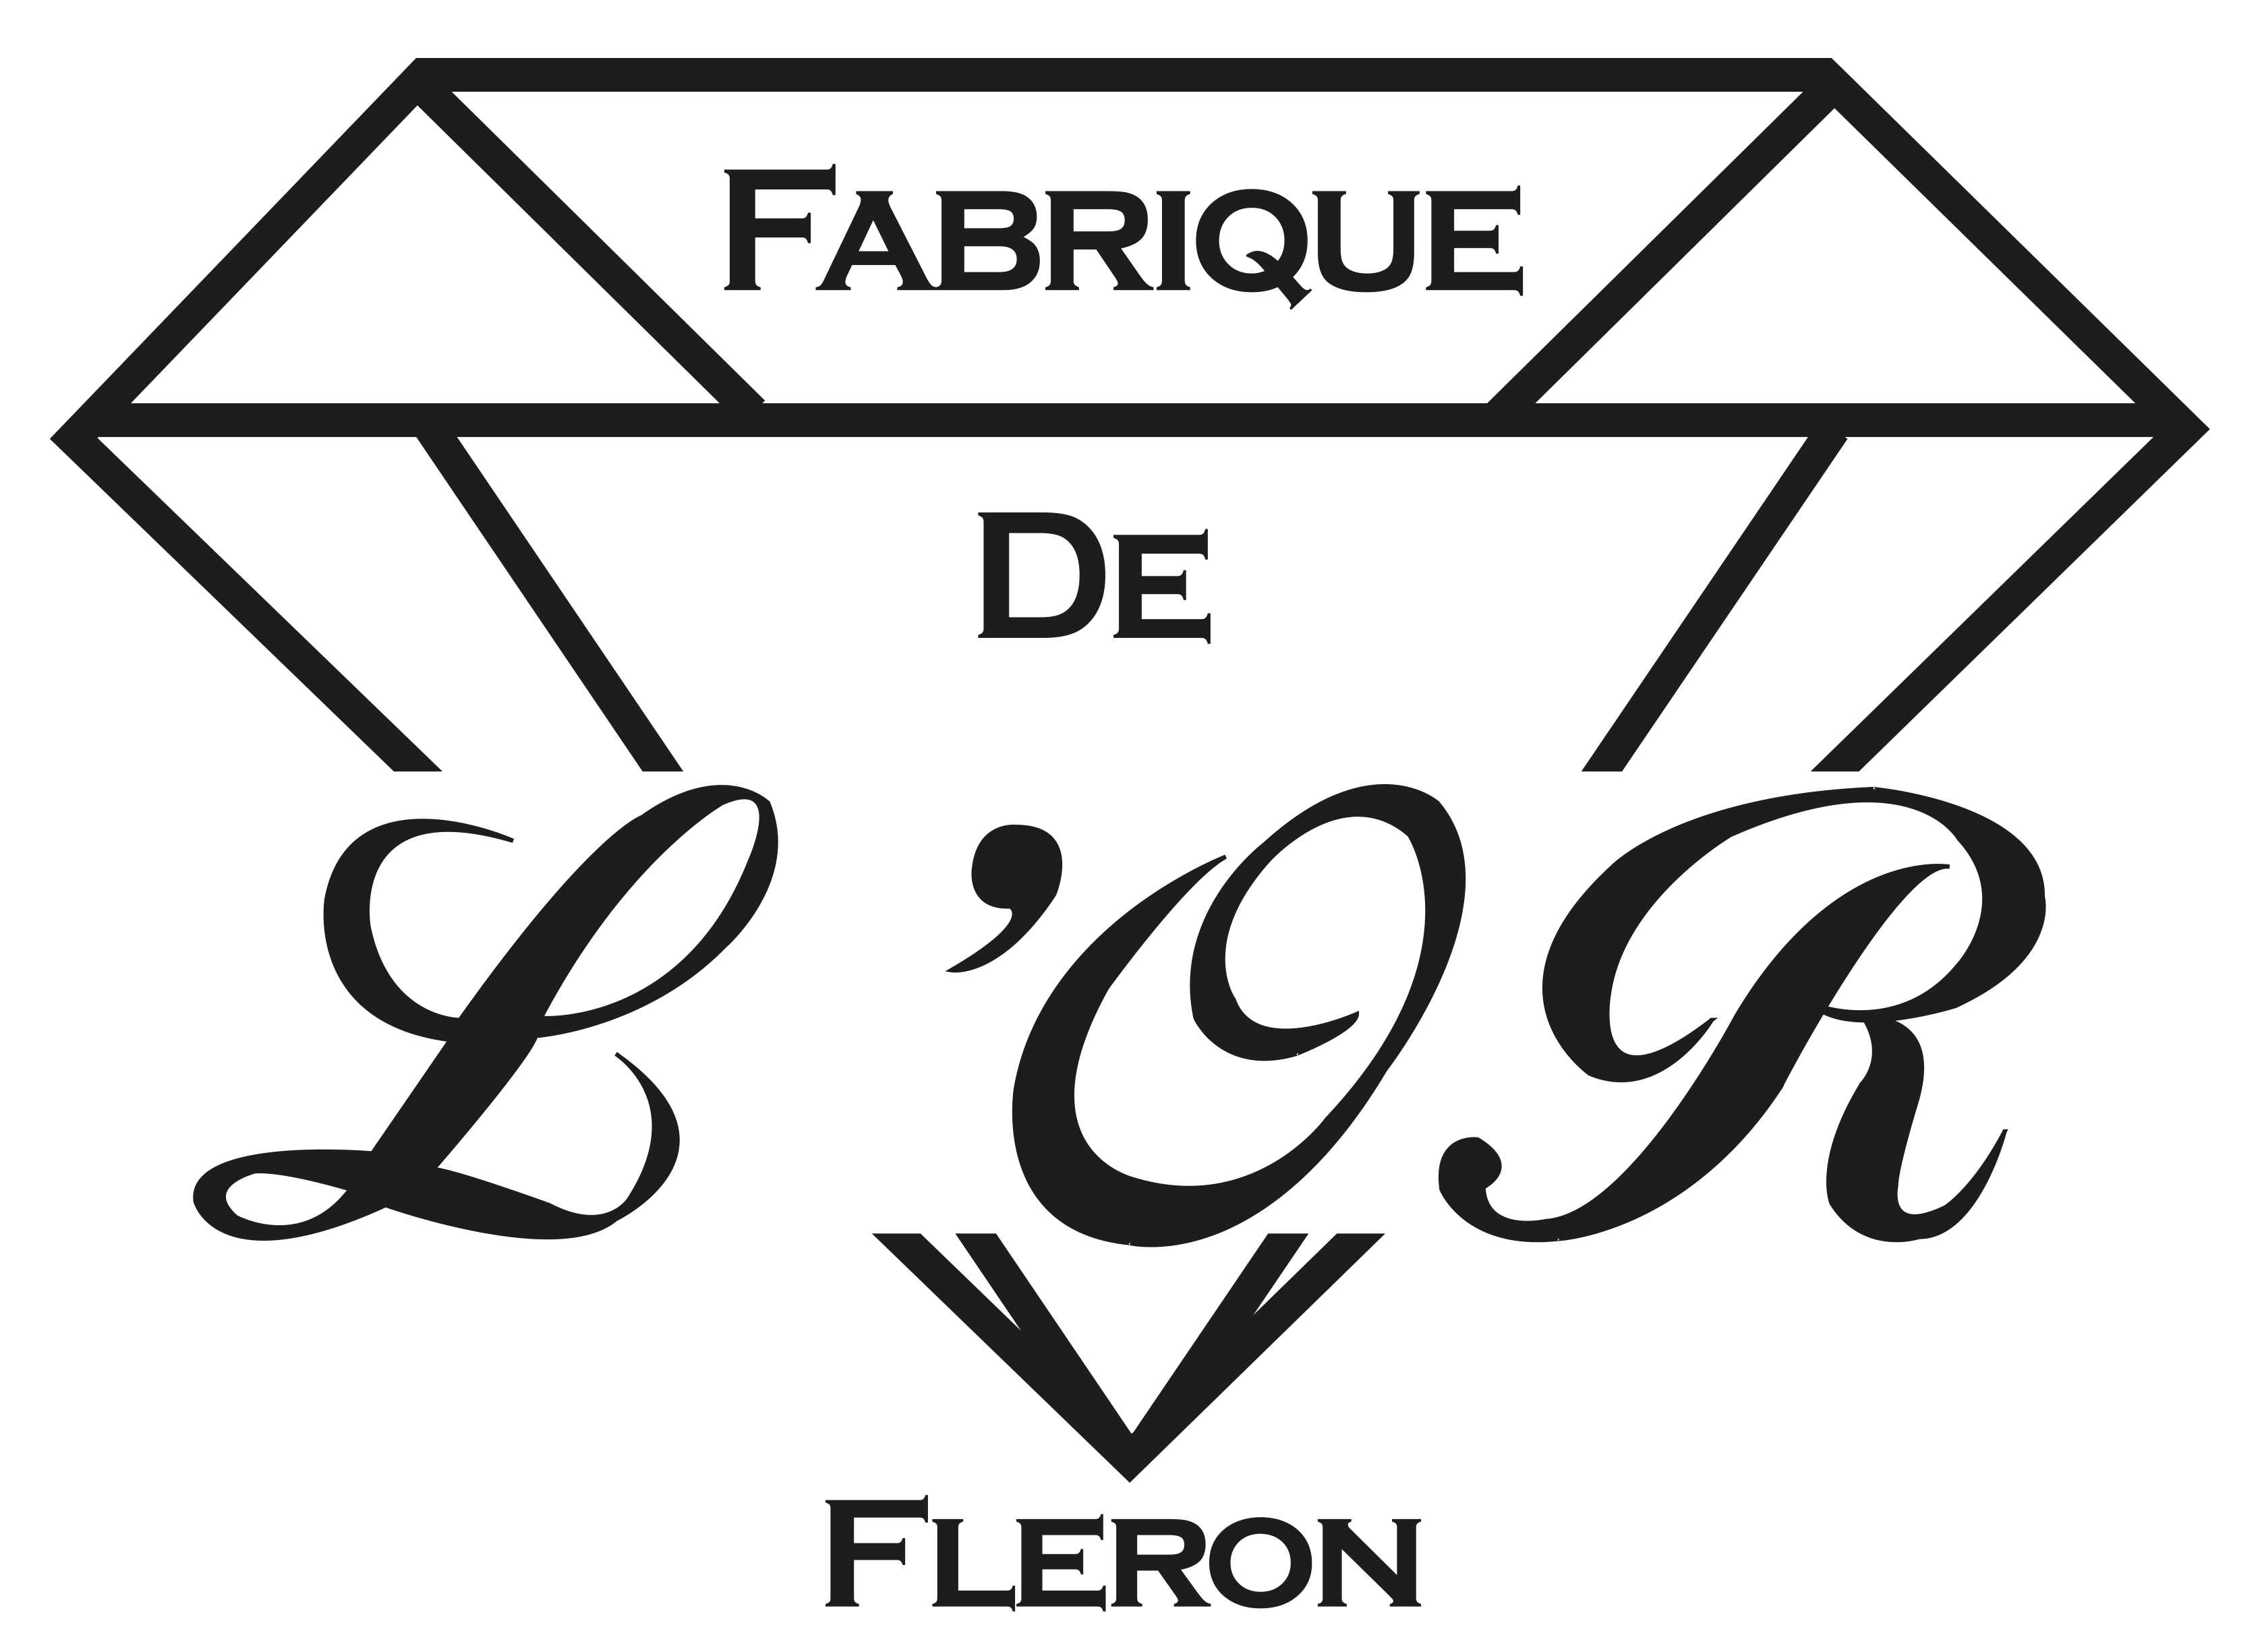 Fabrique de l'Or